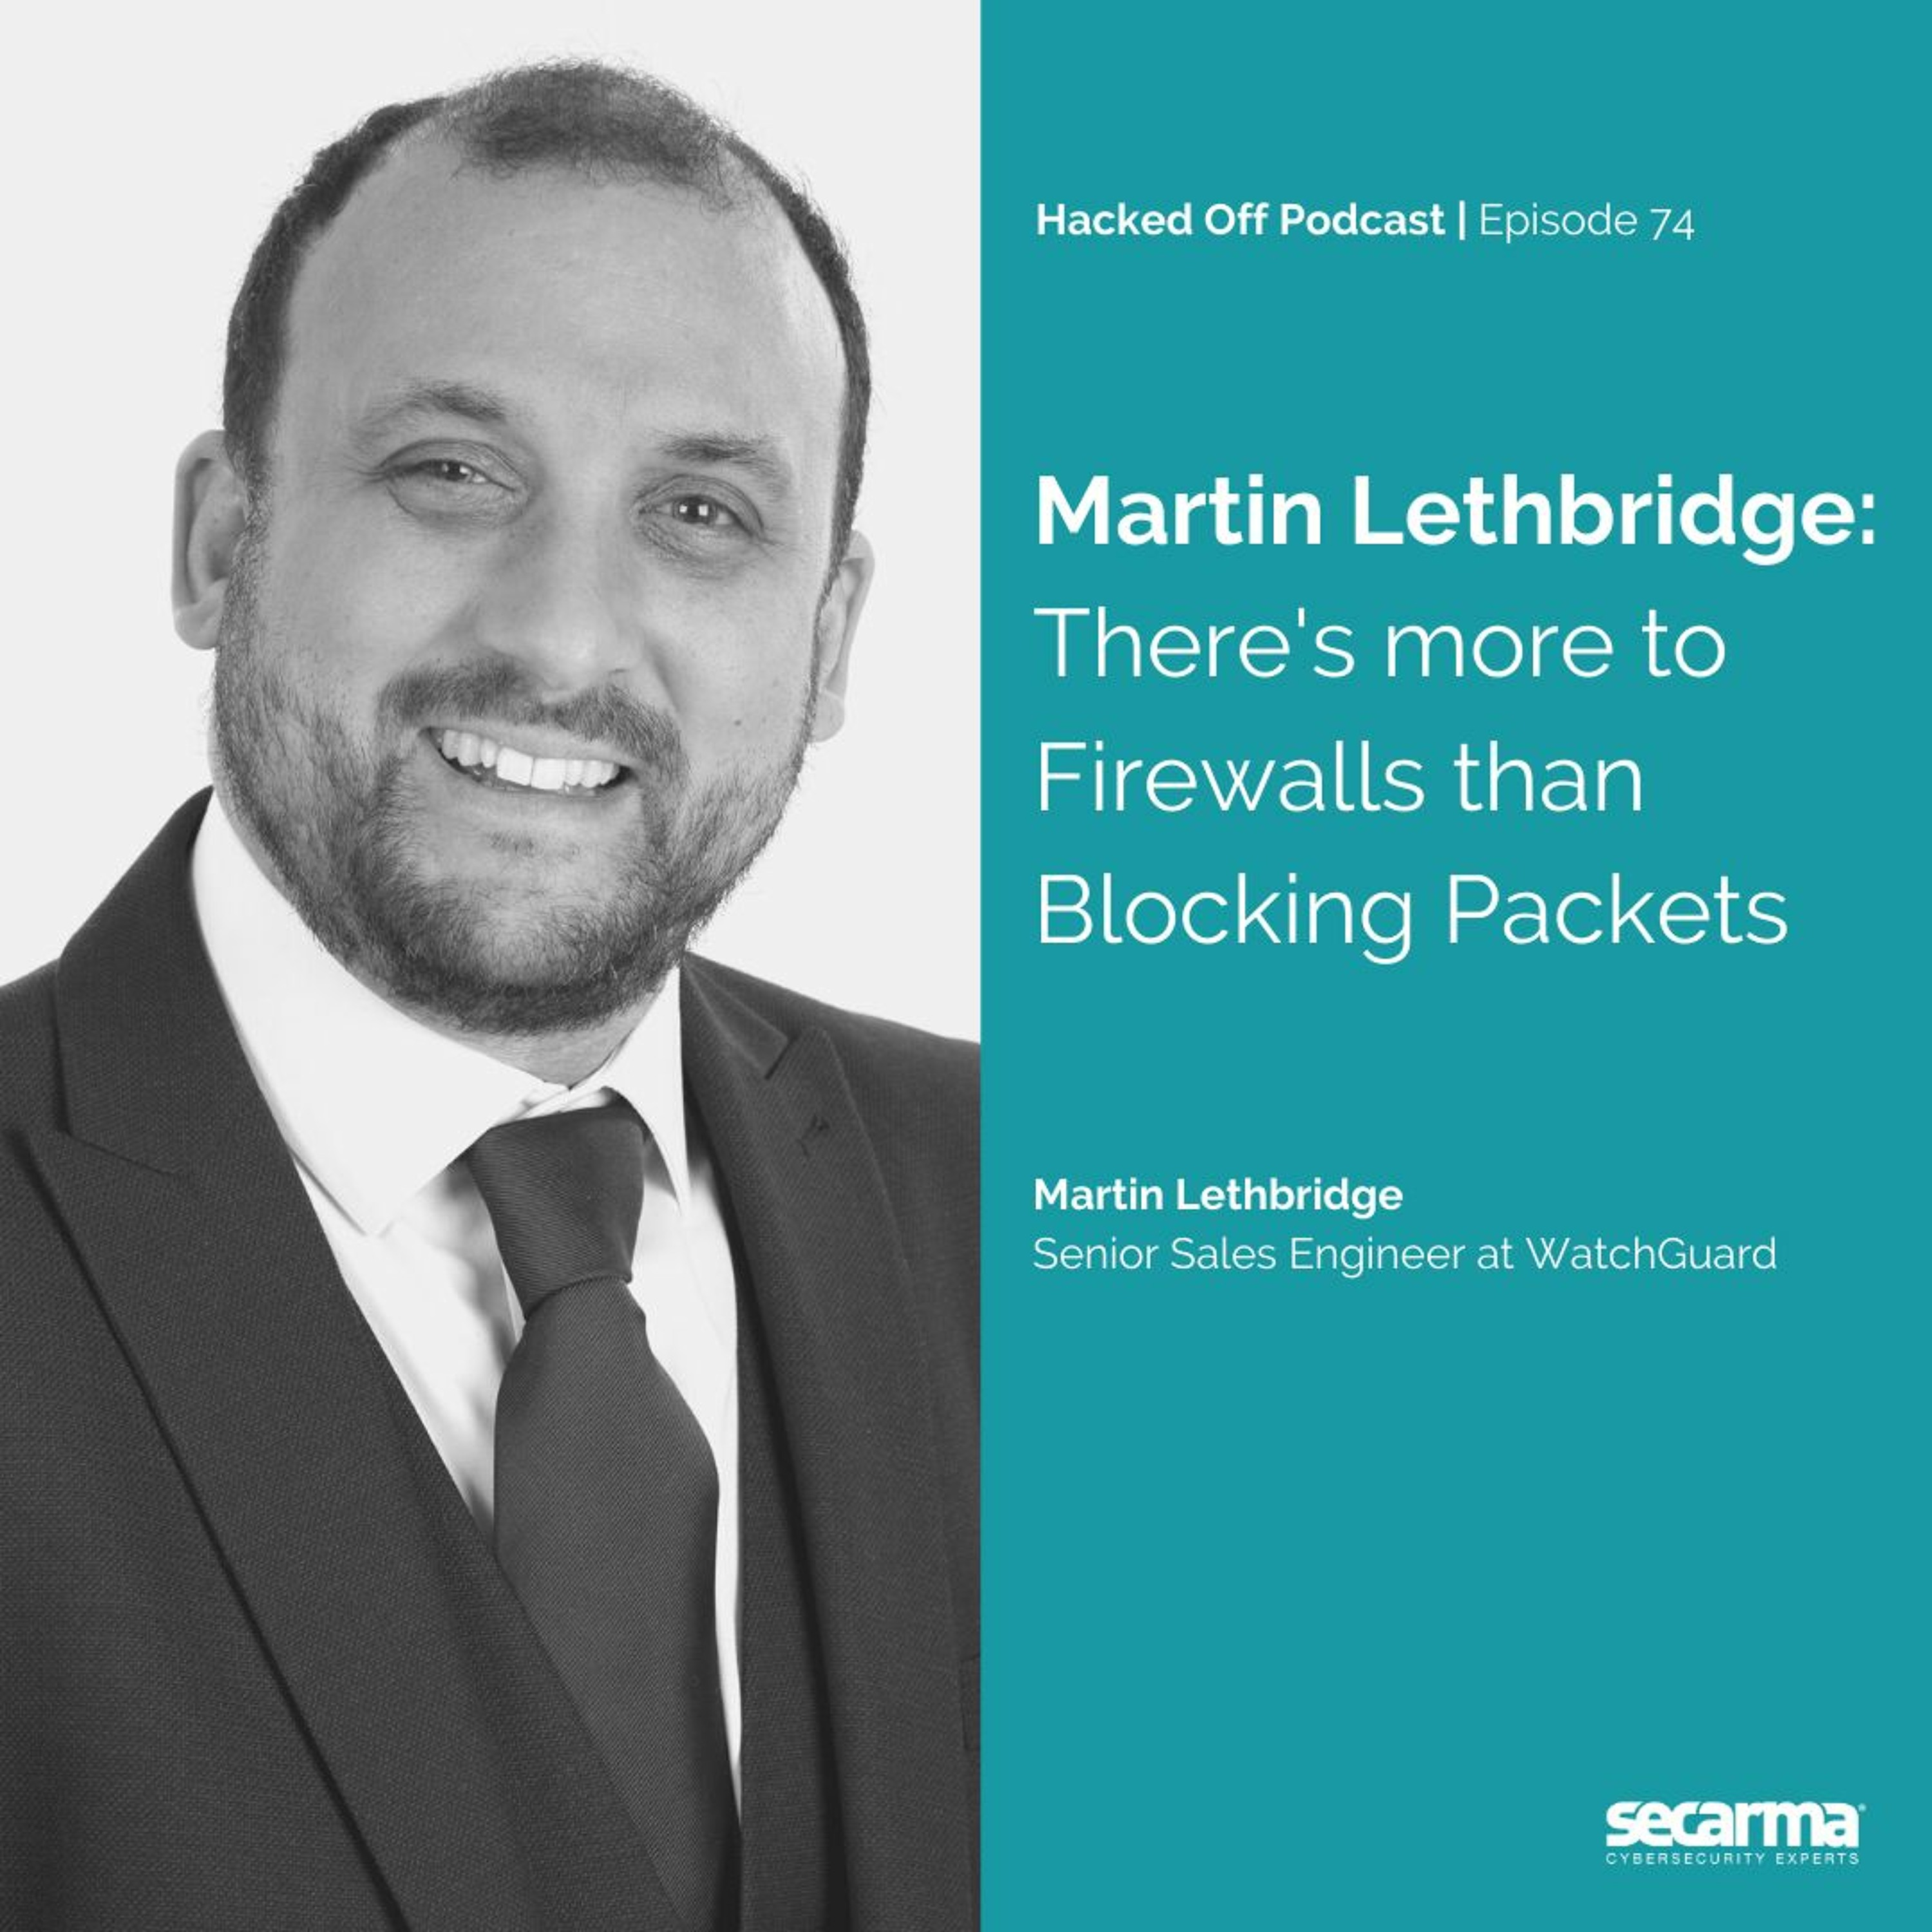 074. Martin Lethbridge: There's more to Firewalls than Blocking Packets